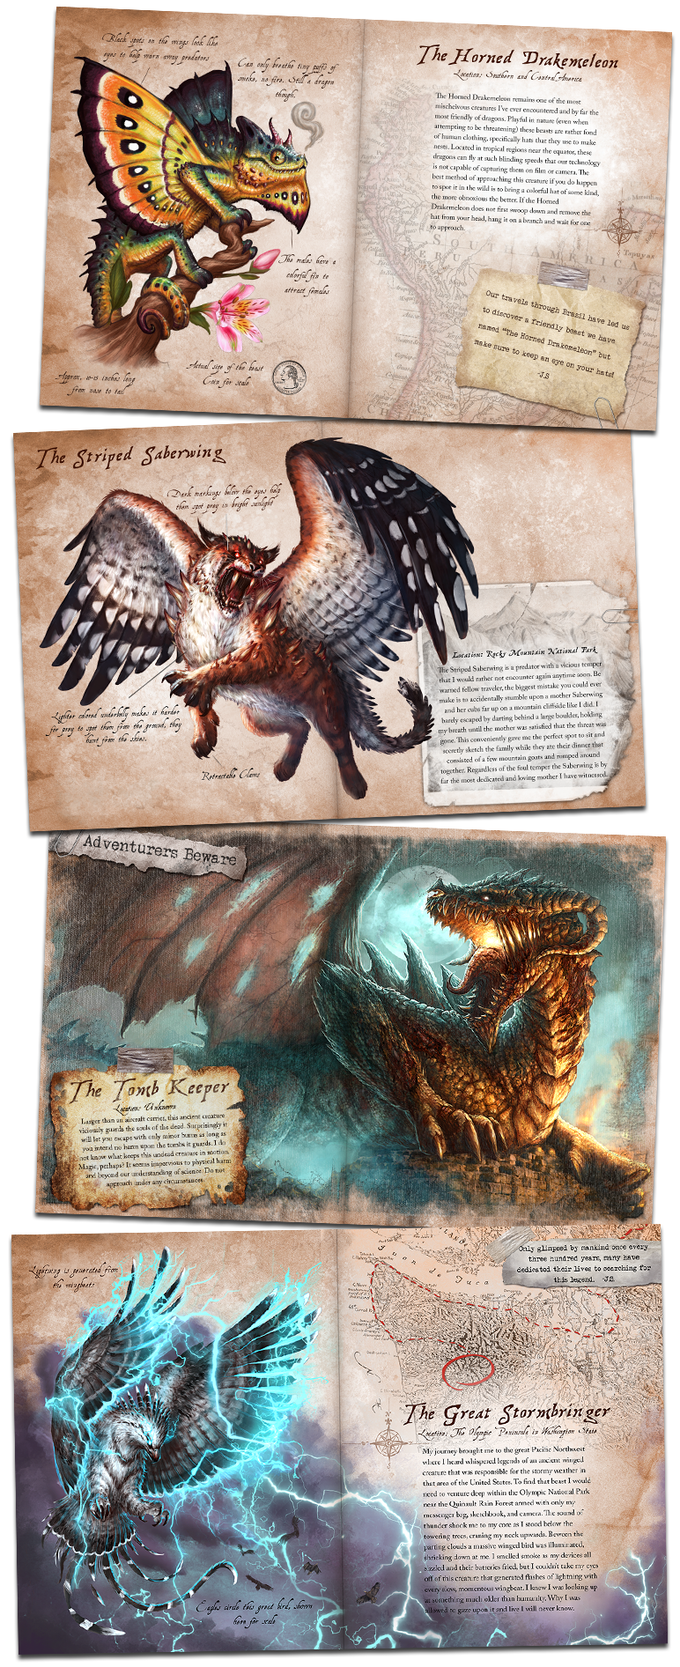 (Saberwing and Storm Bringer creatures were created for Open Legend RPG and are Copyright Seventh Sphere Publishing, LLC 2017)